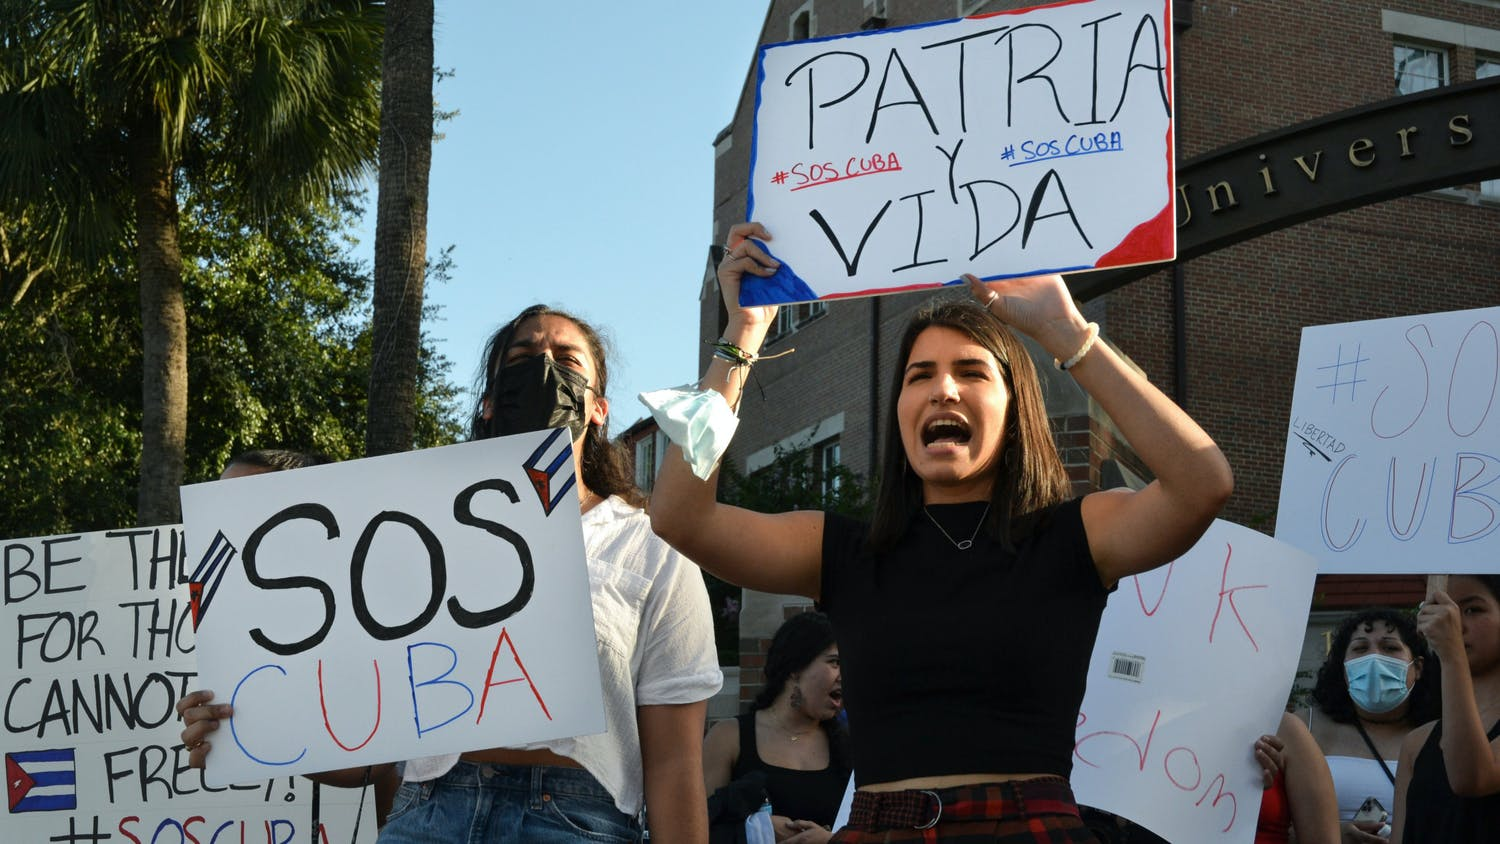 """Marian Hernandez, 21, a psychology senior, (right), and Jenna Hidalgo, 21, a criminology and psychology senior, (left), shout """"Patria y Vida"""" as they raise signs embellished with colors of the Cuban flag on Friday, July 16, 2021. UF students gathered at the corner of University Avenue and 13th street to protest human rights abuses in Cuba."""